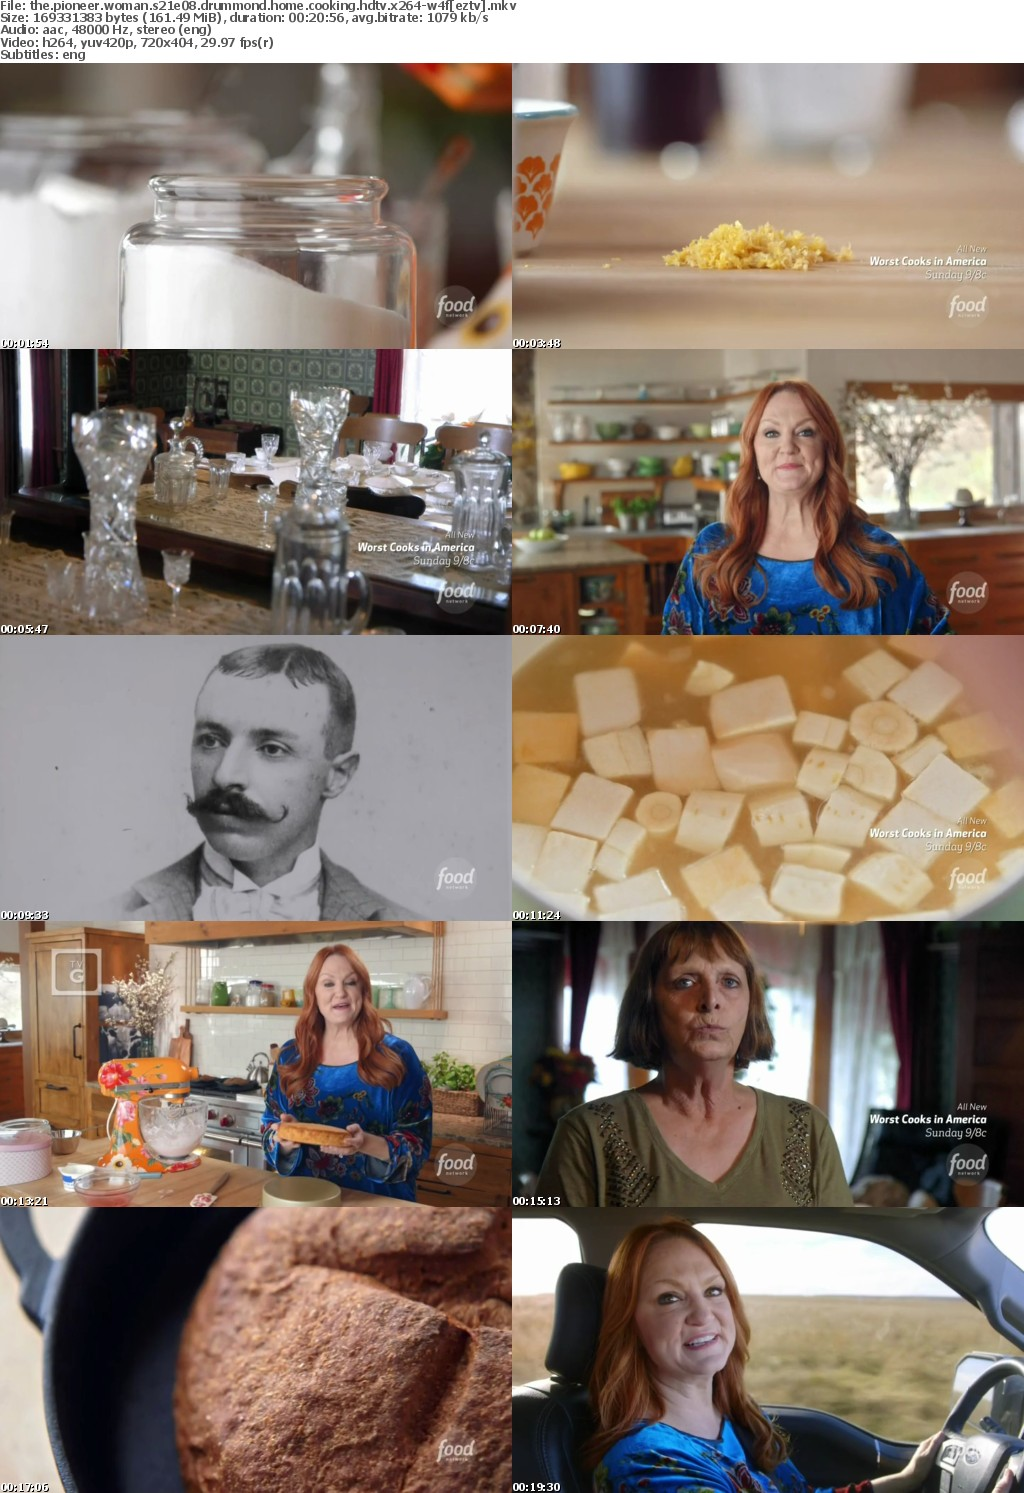 The Pioneer Woman S21E08 Drummond Home Cooking HDTV x264-W4F